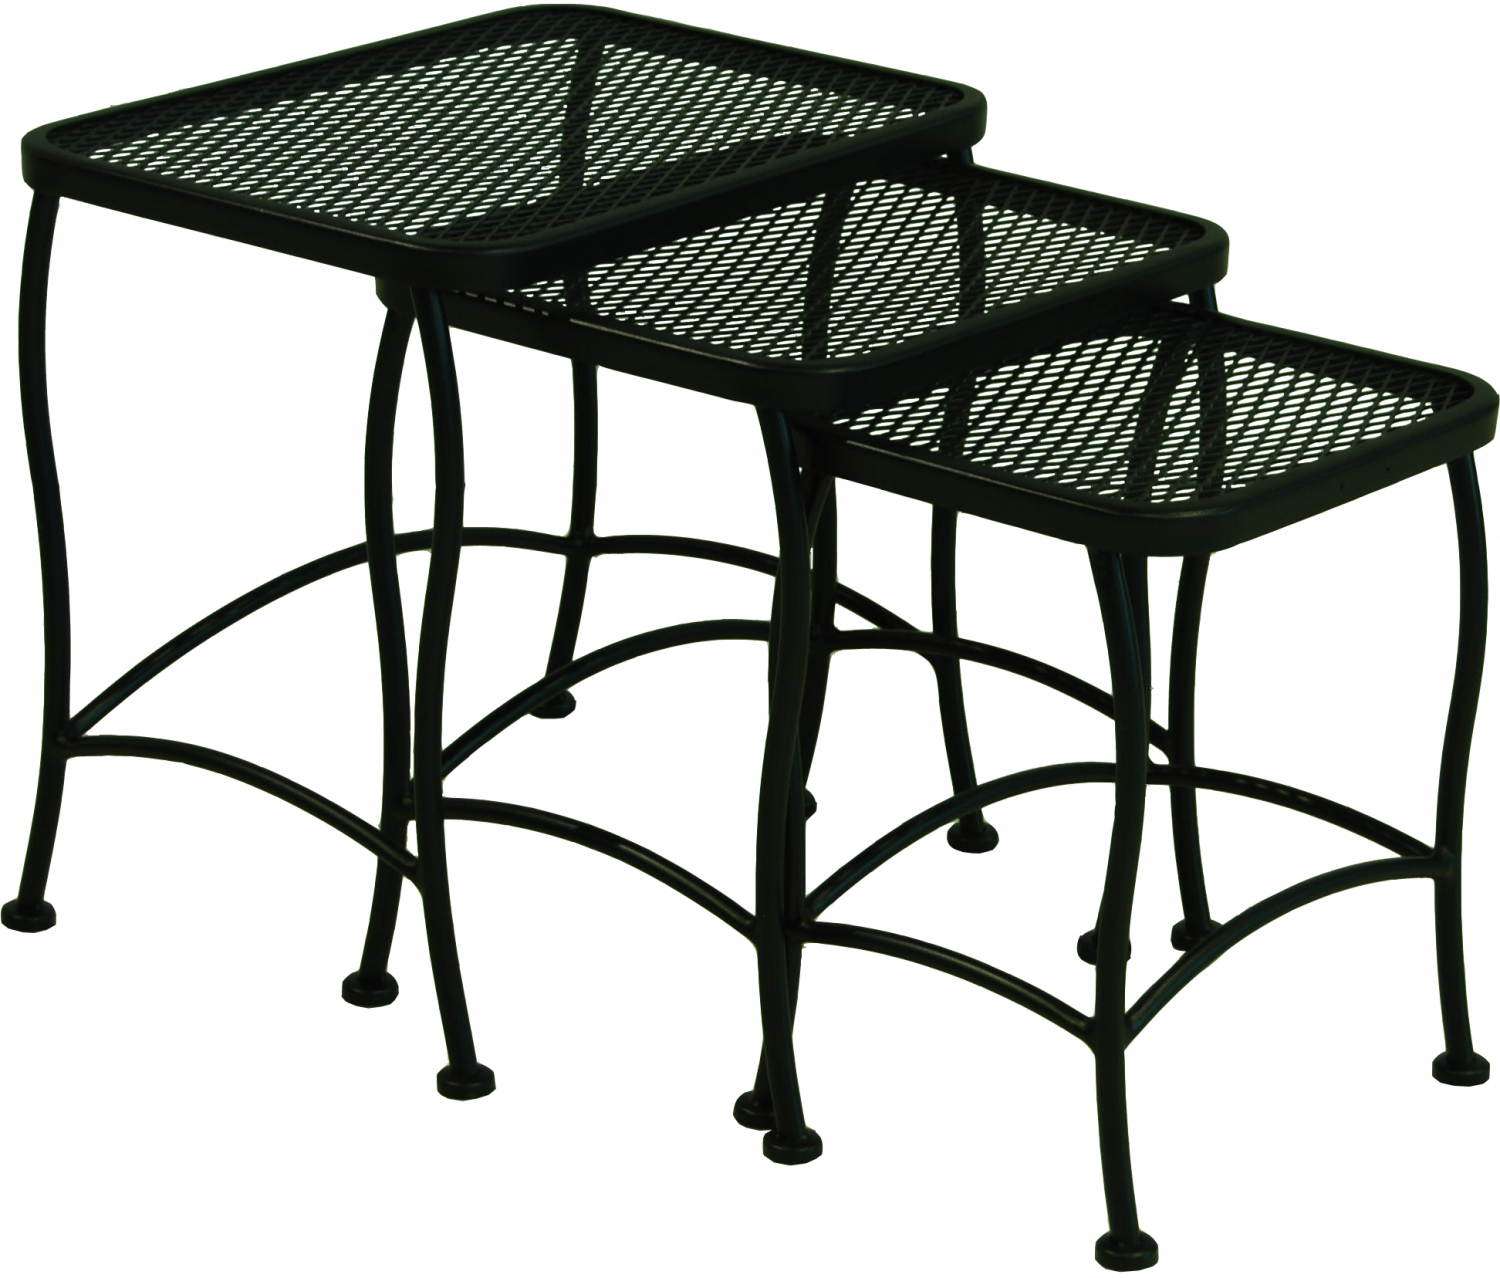 3 Piece Seacliff Wrought Iron Outdoor Nesting Side End ...